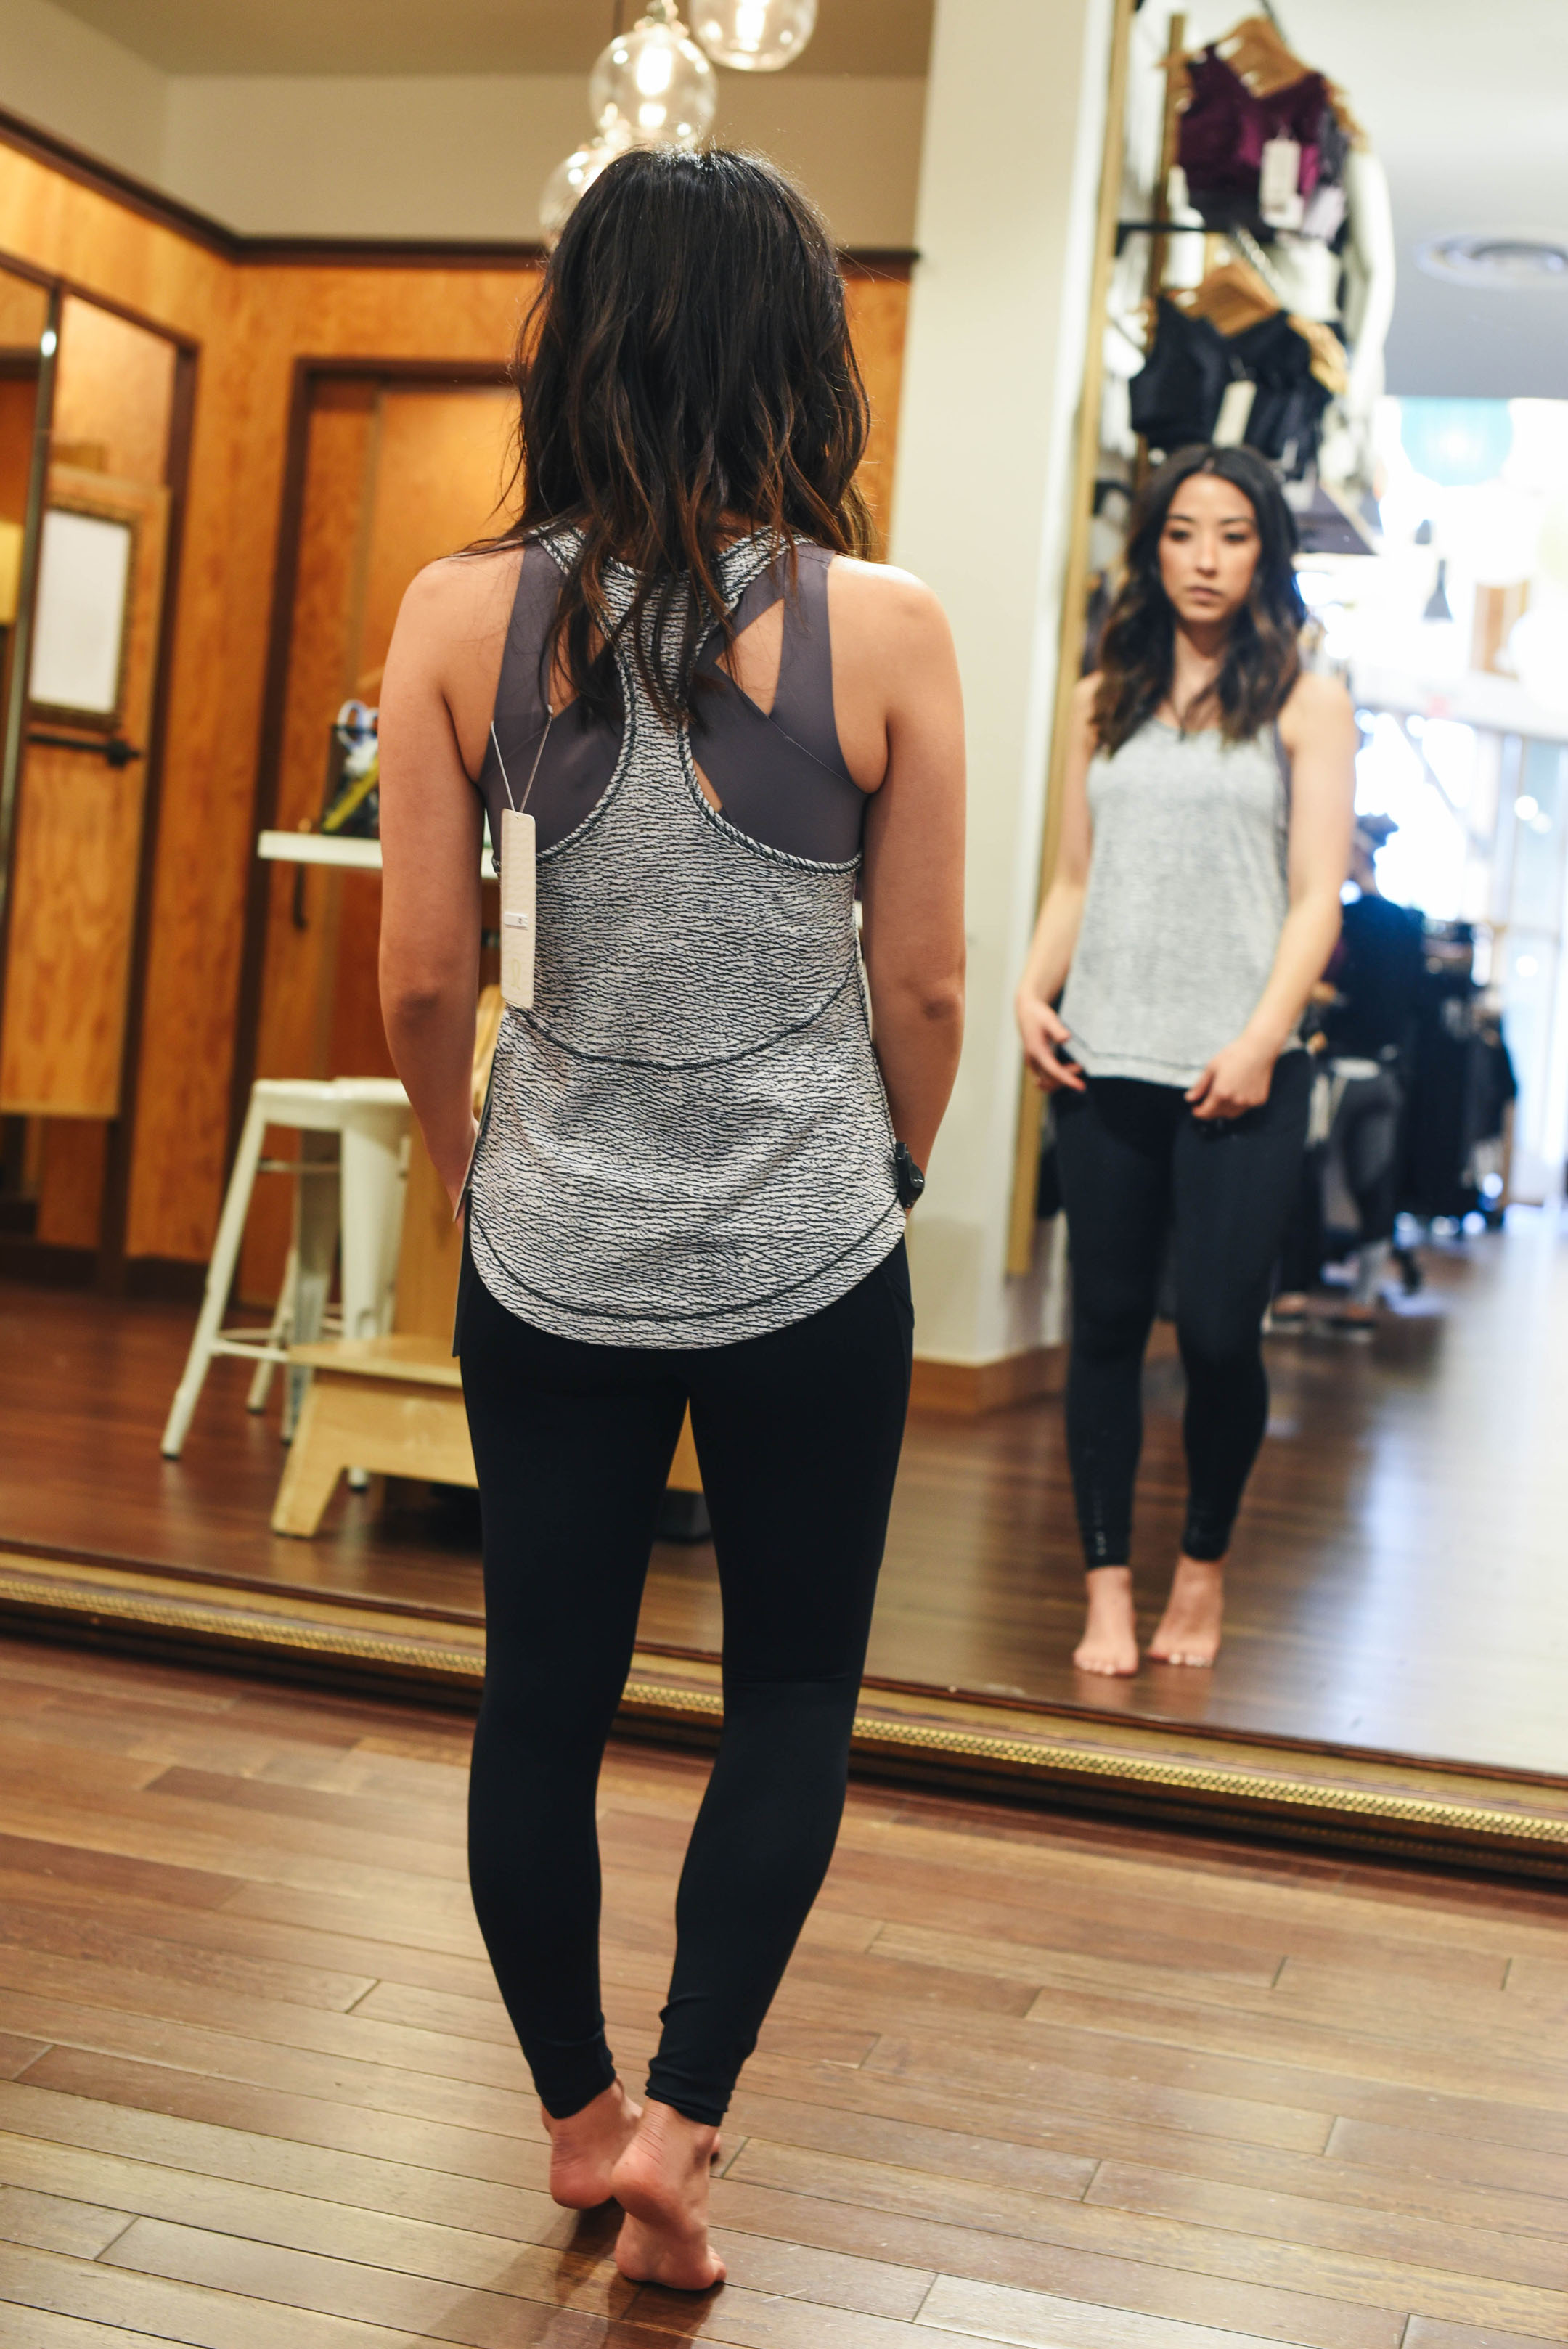 lululemon Enlite Bra try On's